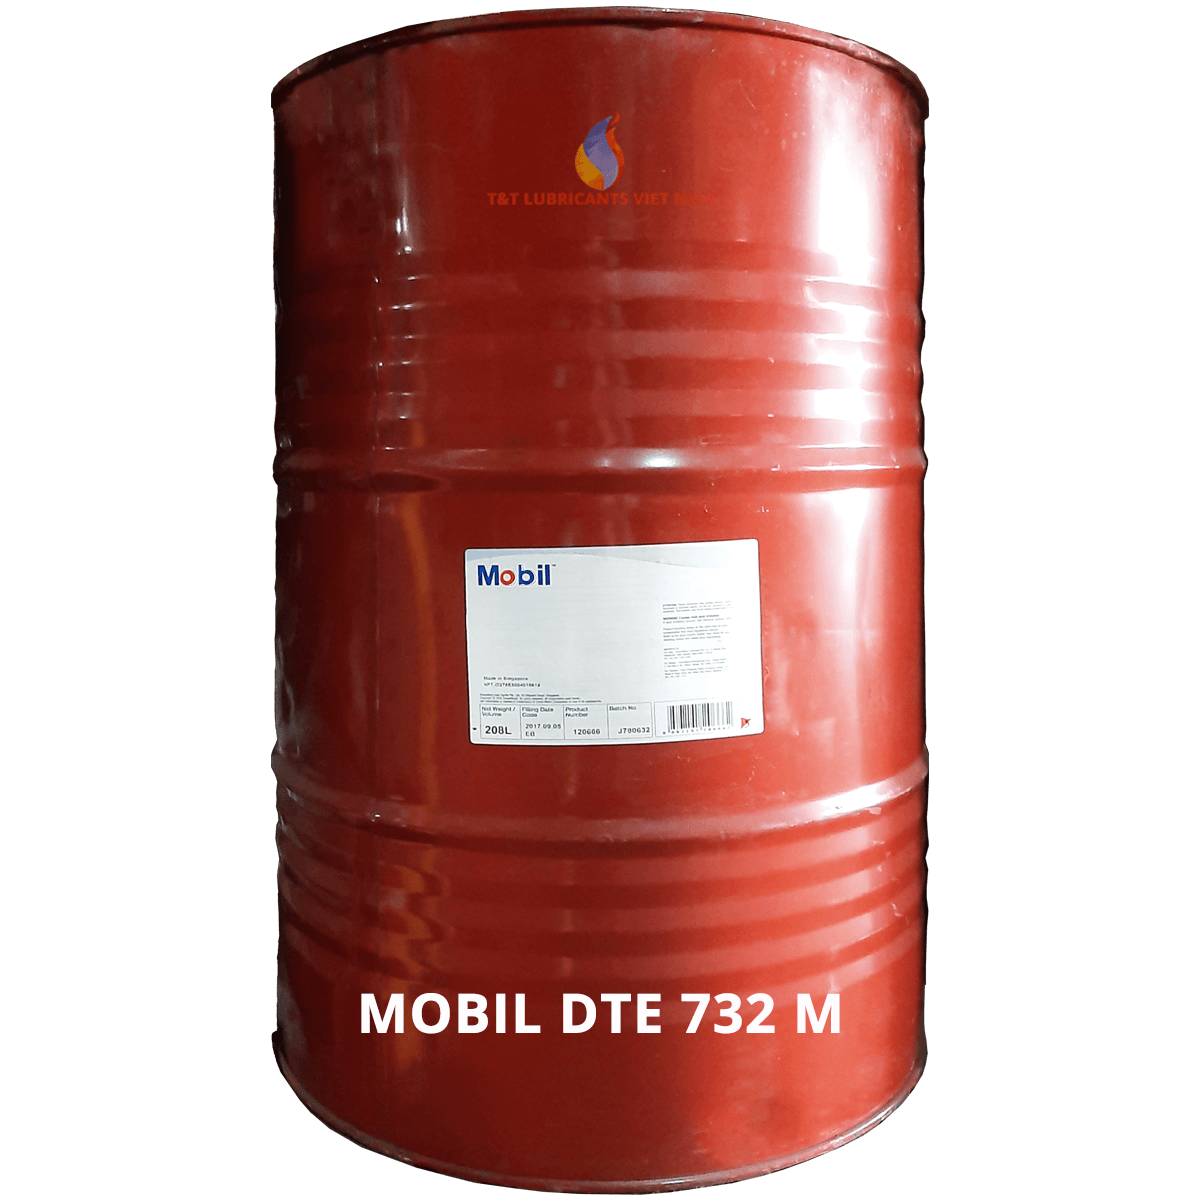 Mobil Dte 732 M T T Viet Nam Lubricants Co Ltd